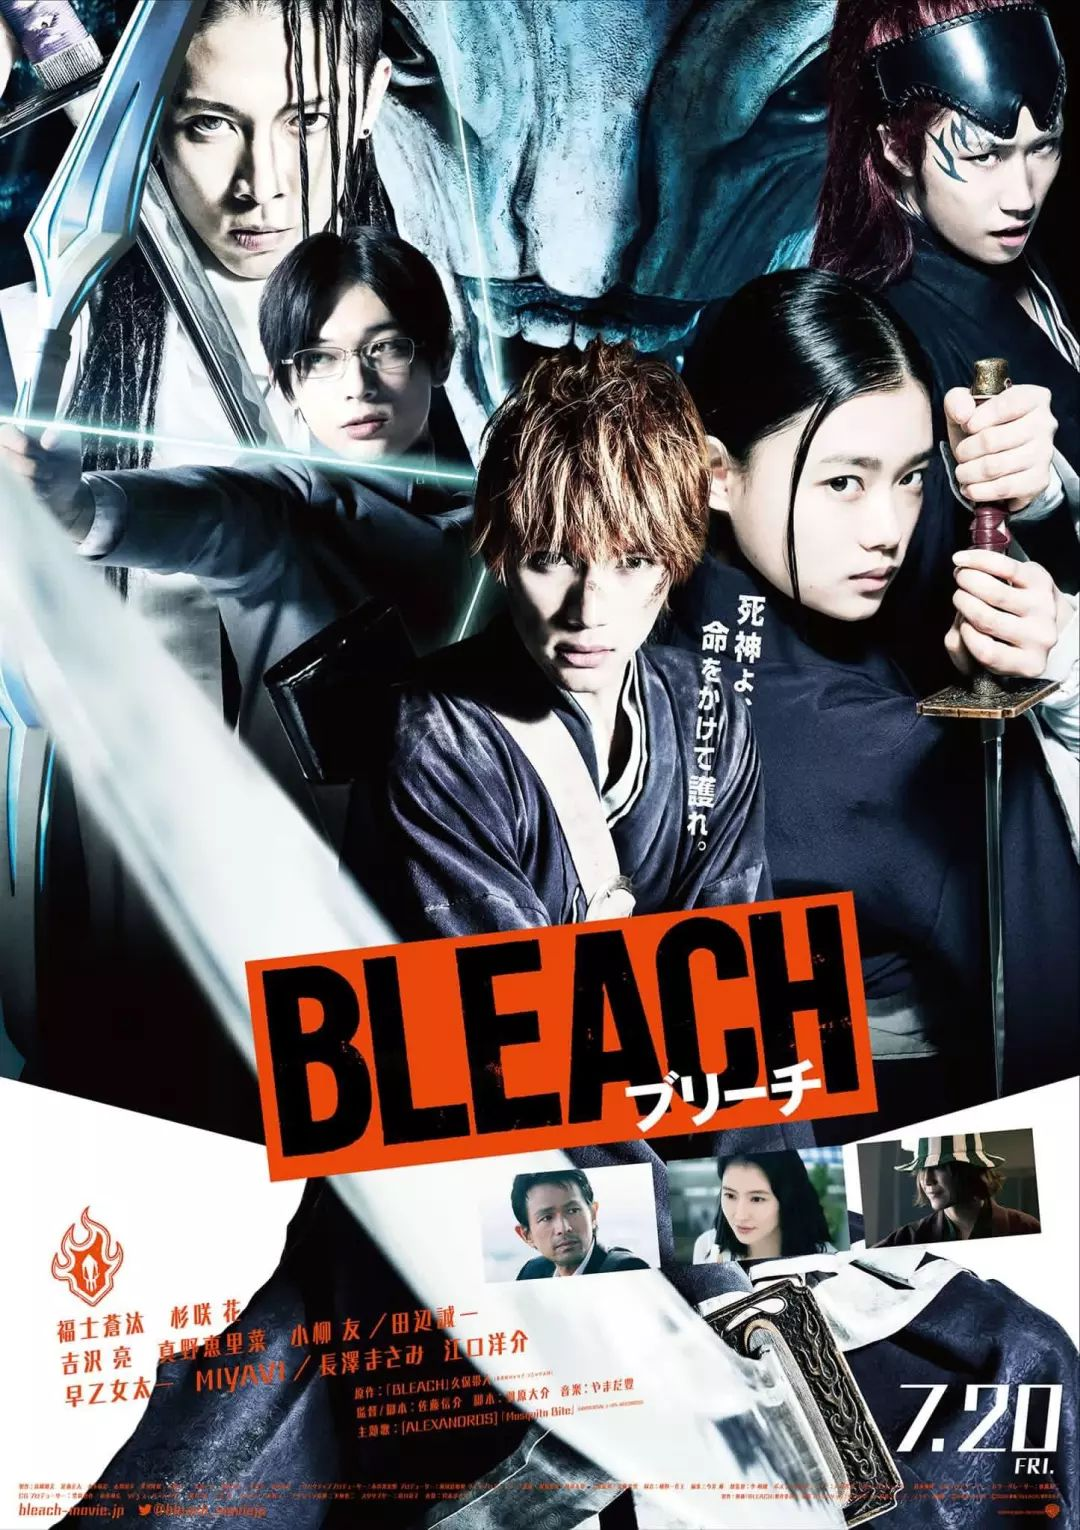 Bleach (Bleach) - film of 2018 35